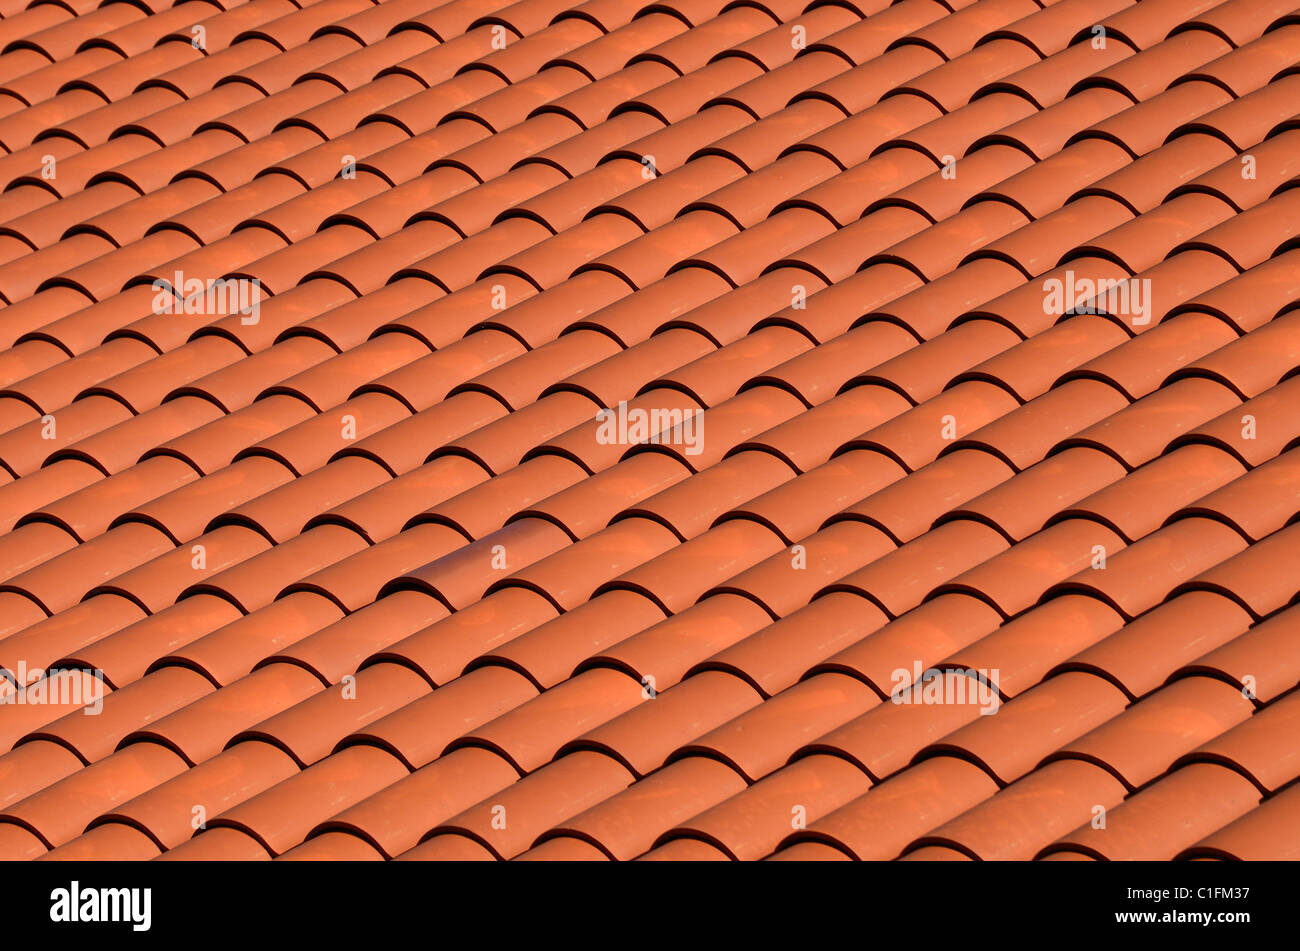 a red tiled slate roof - Stock Image